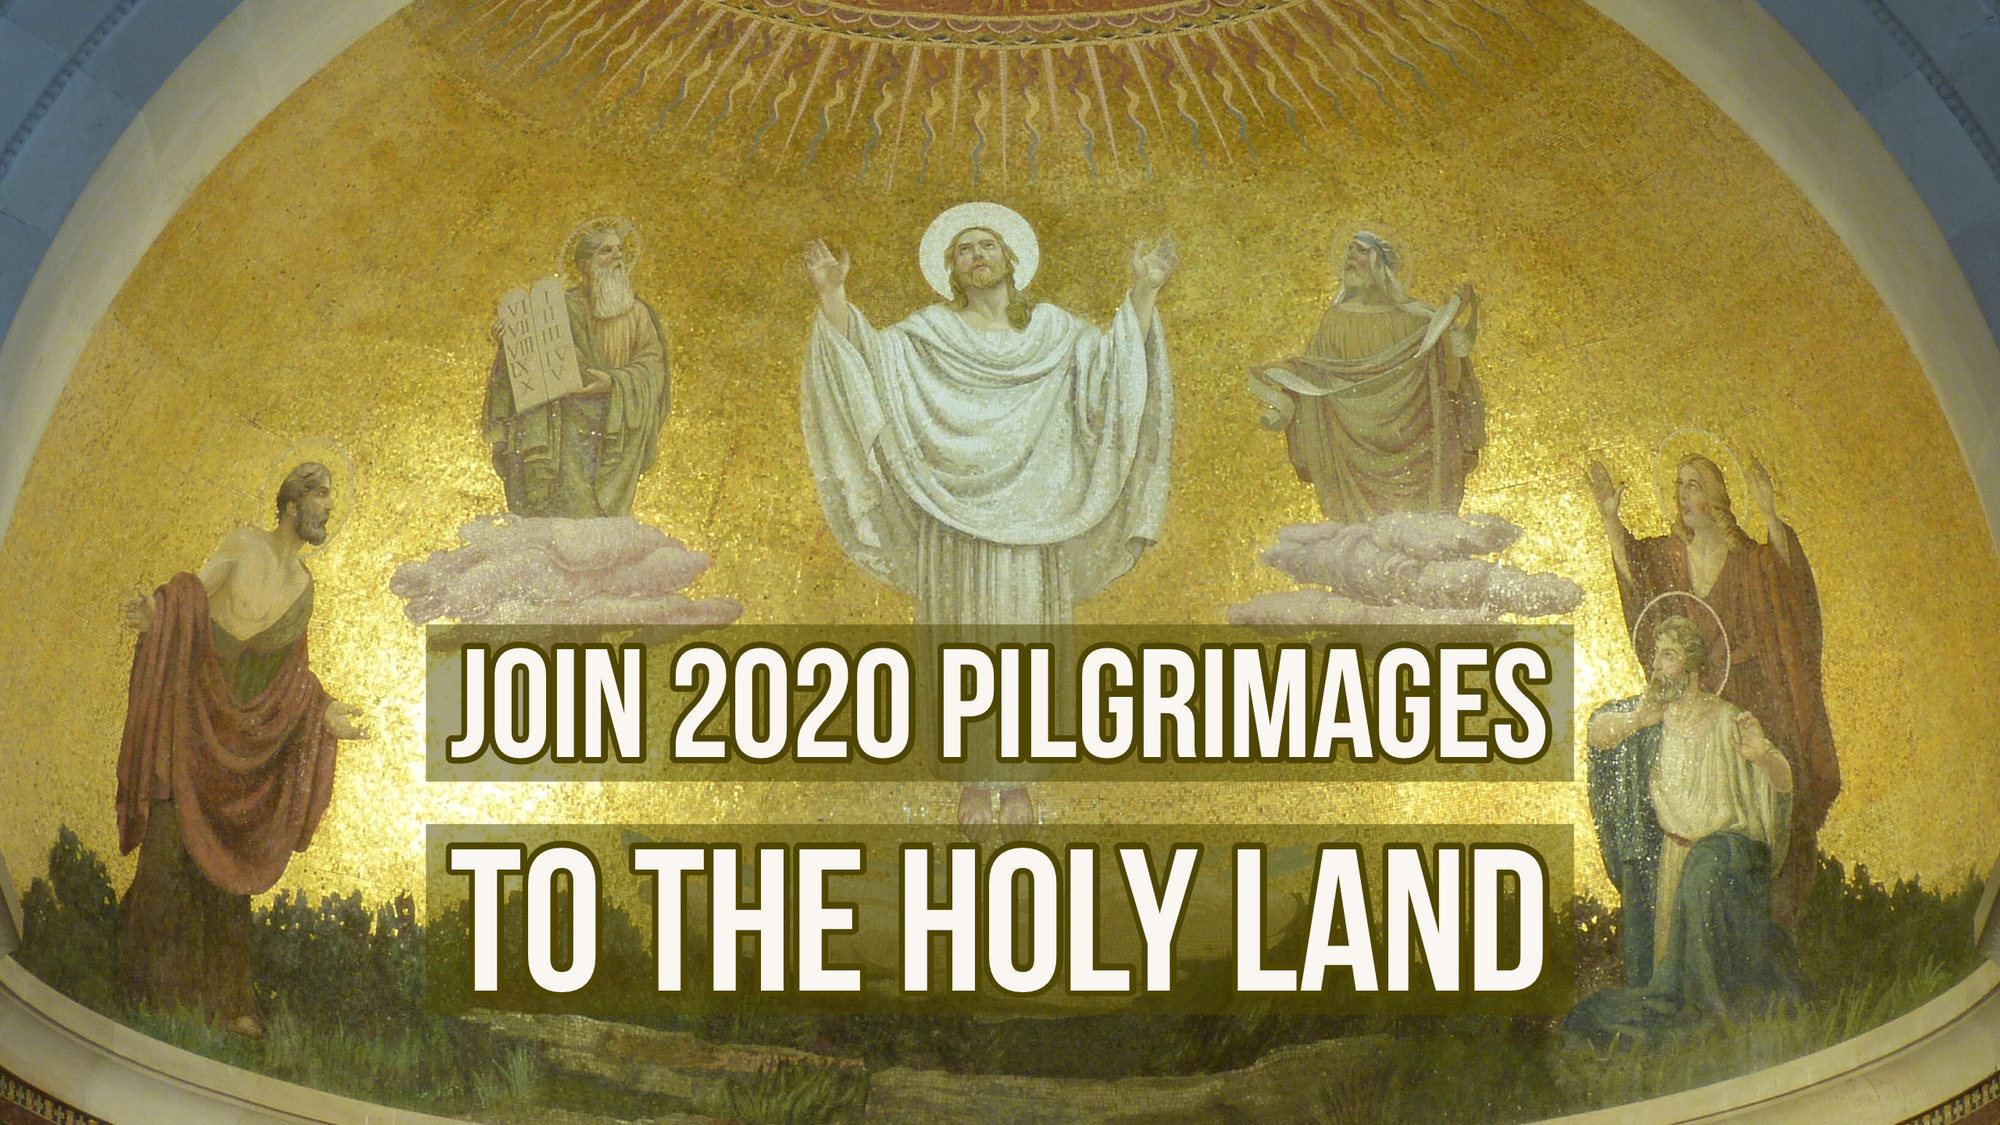 Join 2020 Pilgrimages to the Holy Land